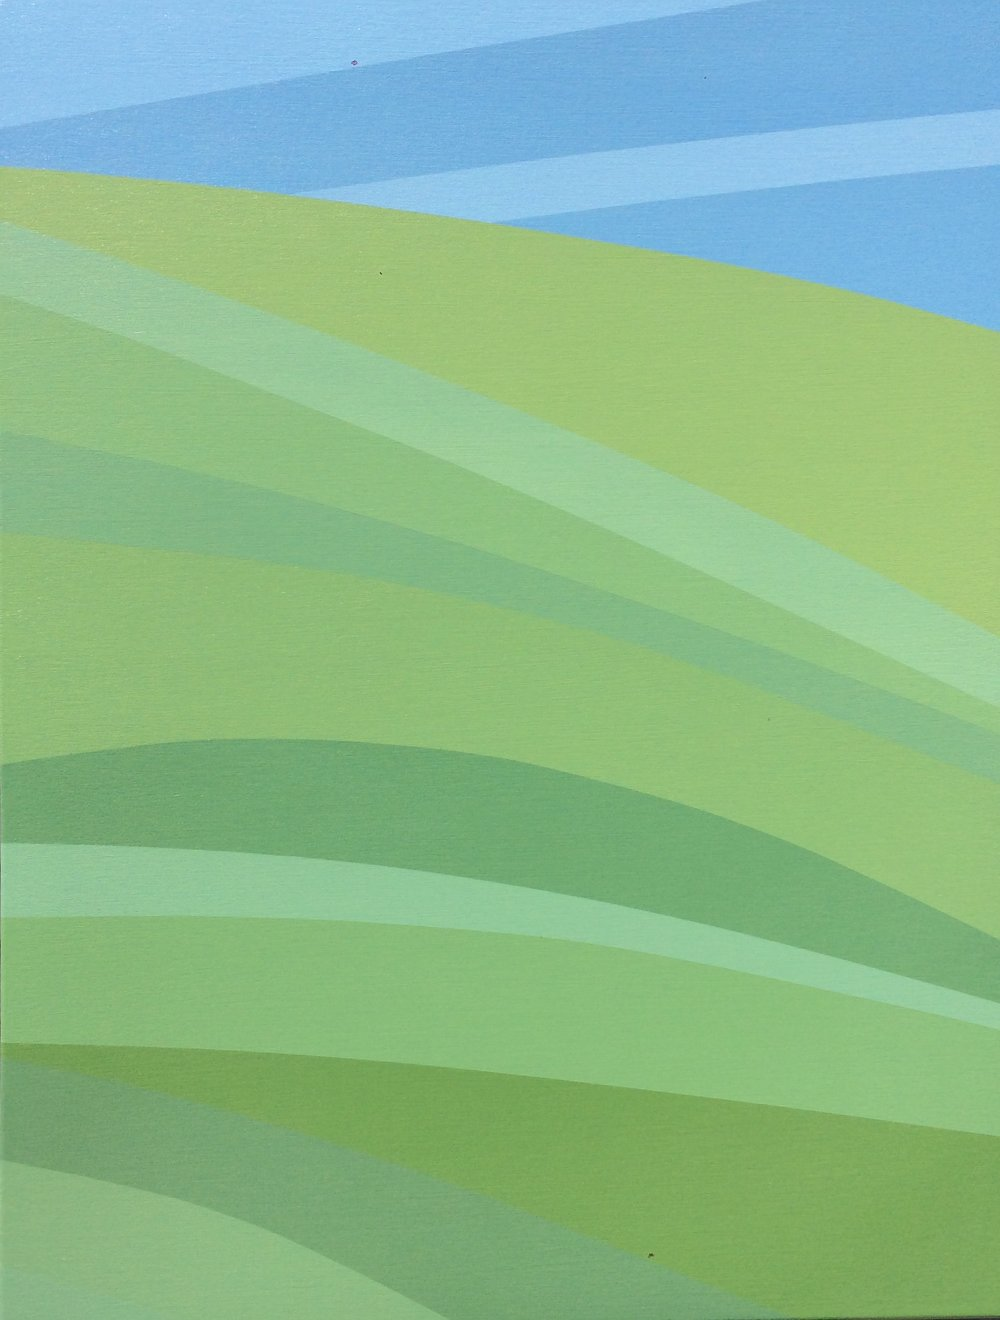 """Grass"", 2016, 40"" X 30"", Acrylic on canvas."